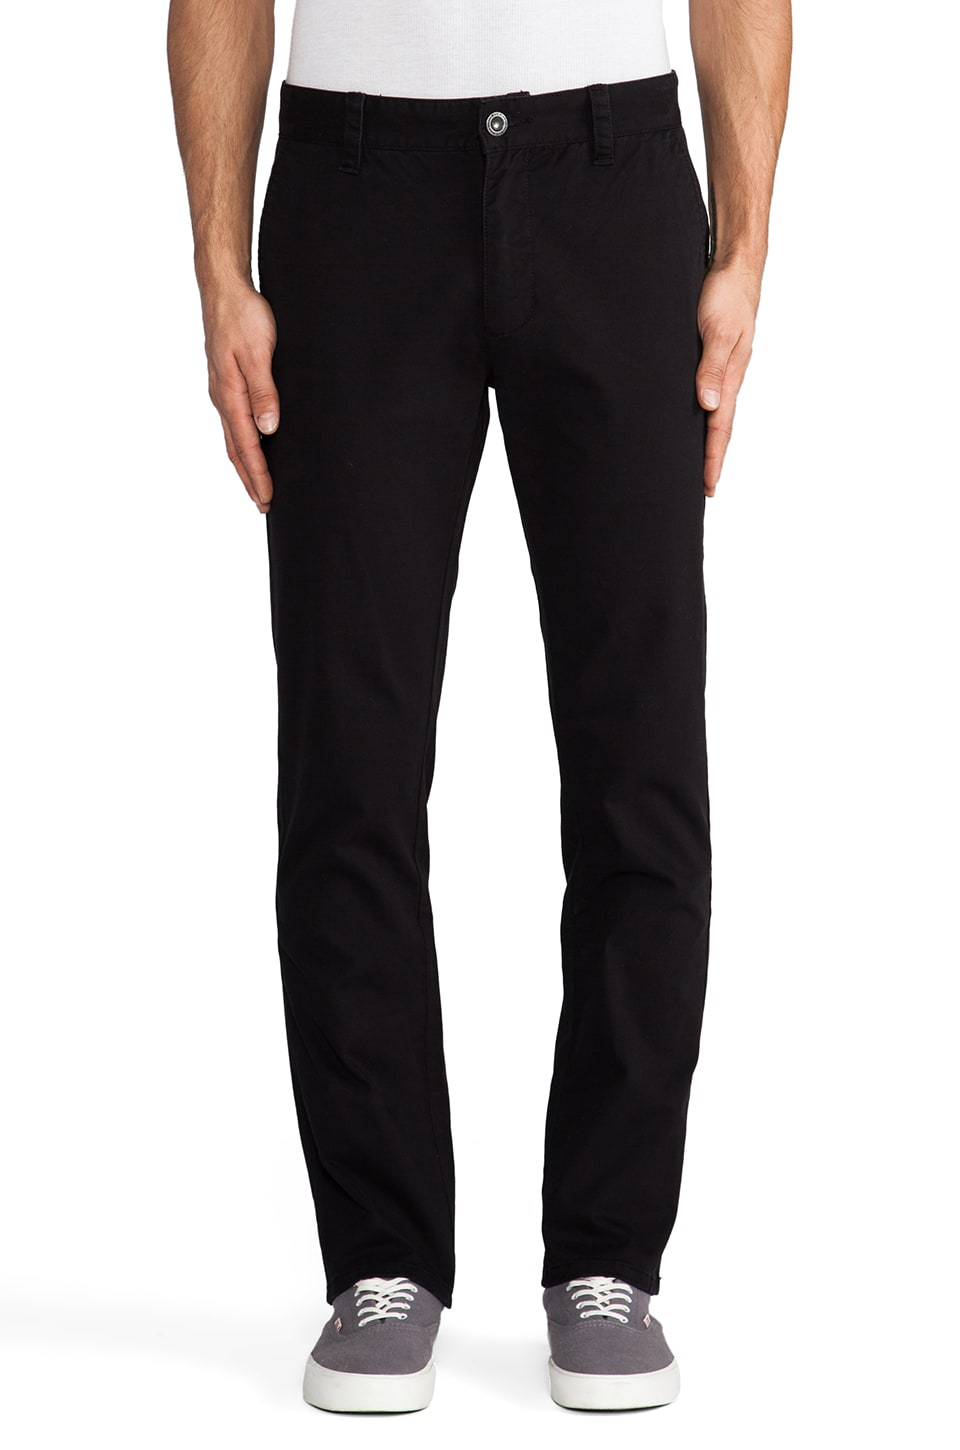 RVCA All Time Chino Pant in Black